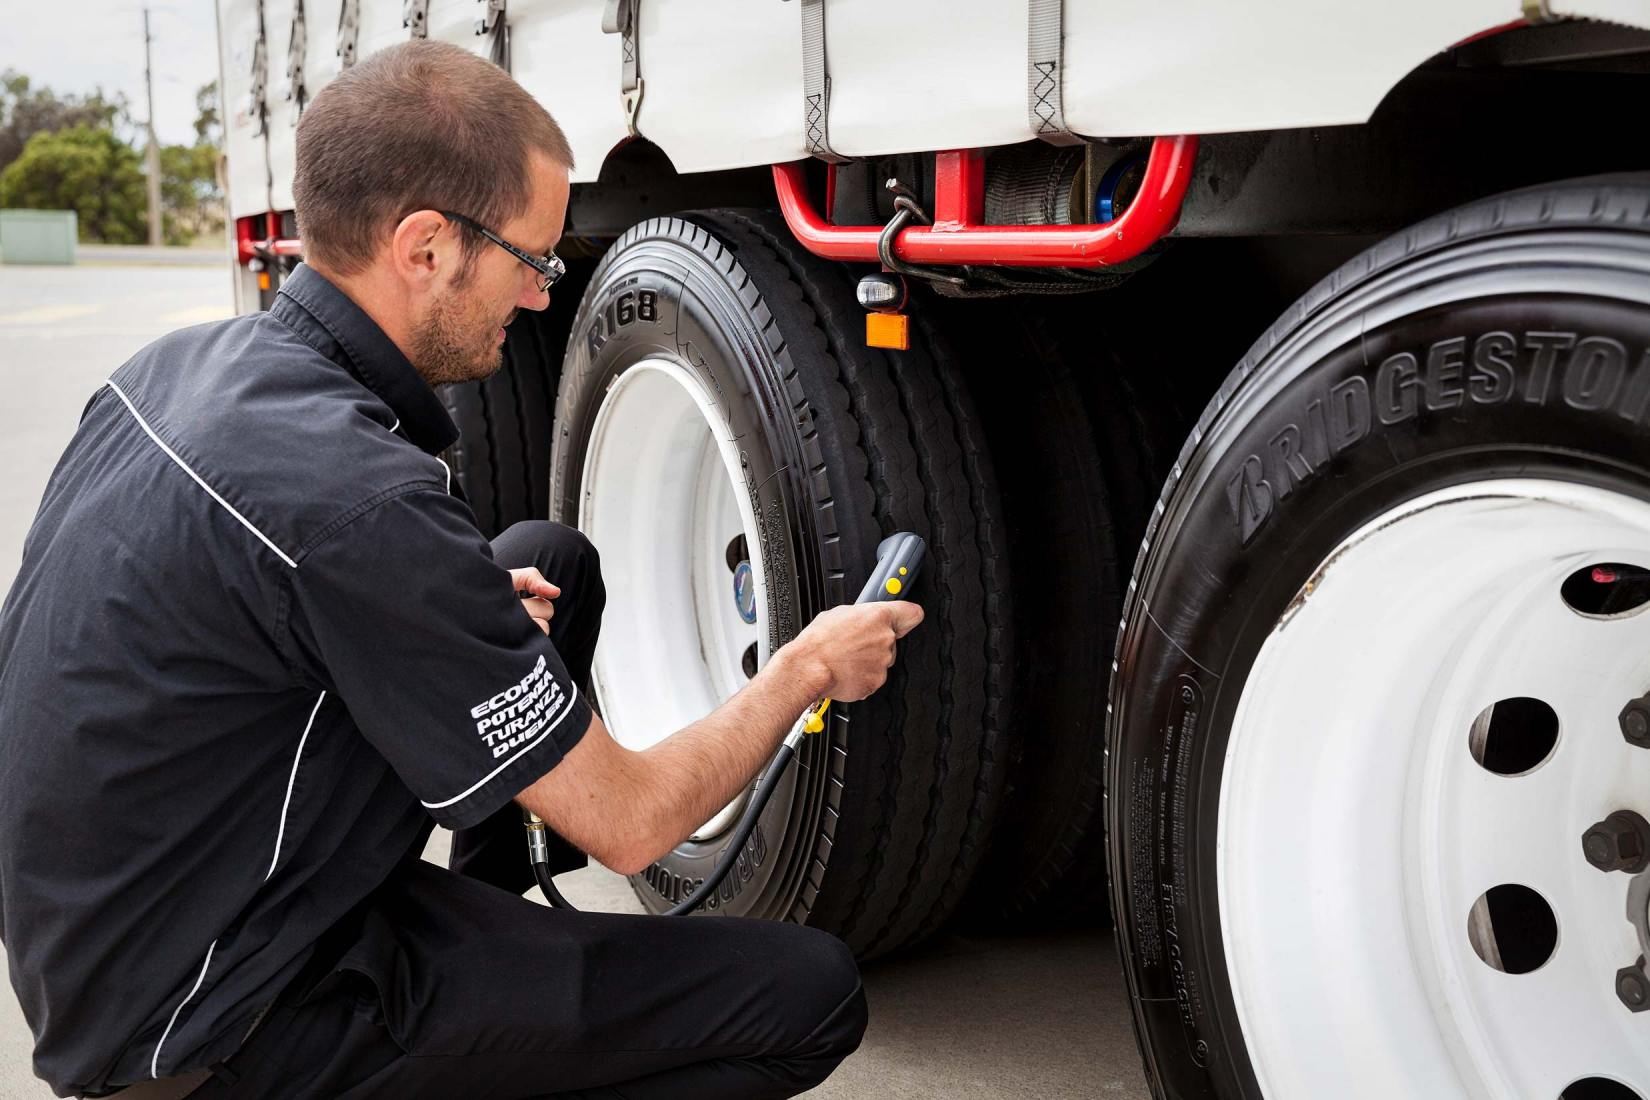 15126-0190-Image-Workshop-melbourne-photographer-industry-trucking-truck-tyre